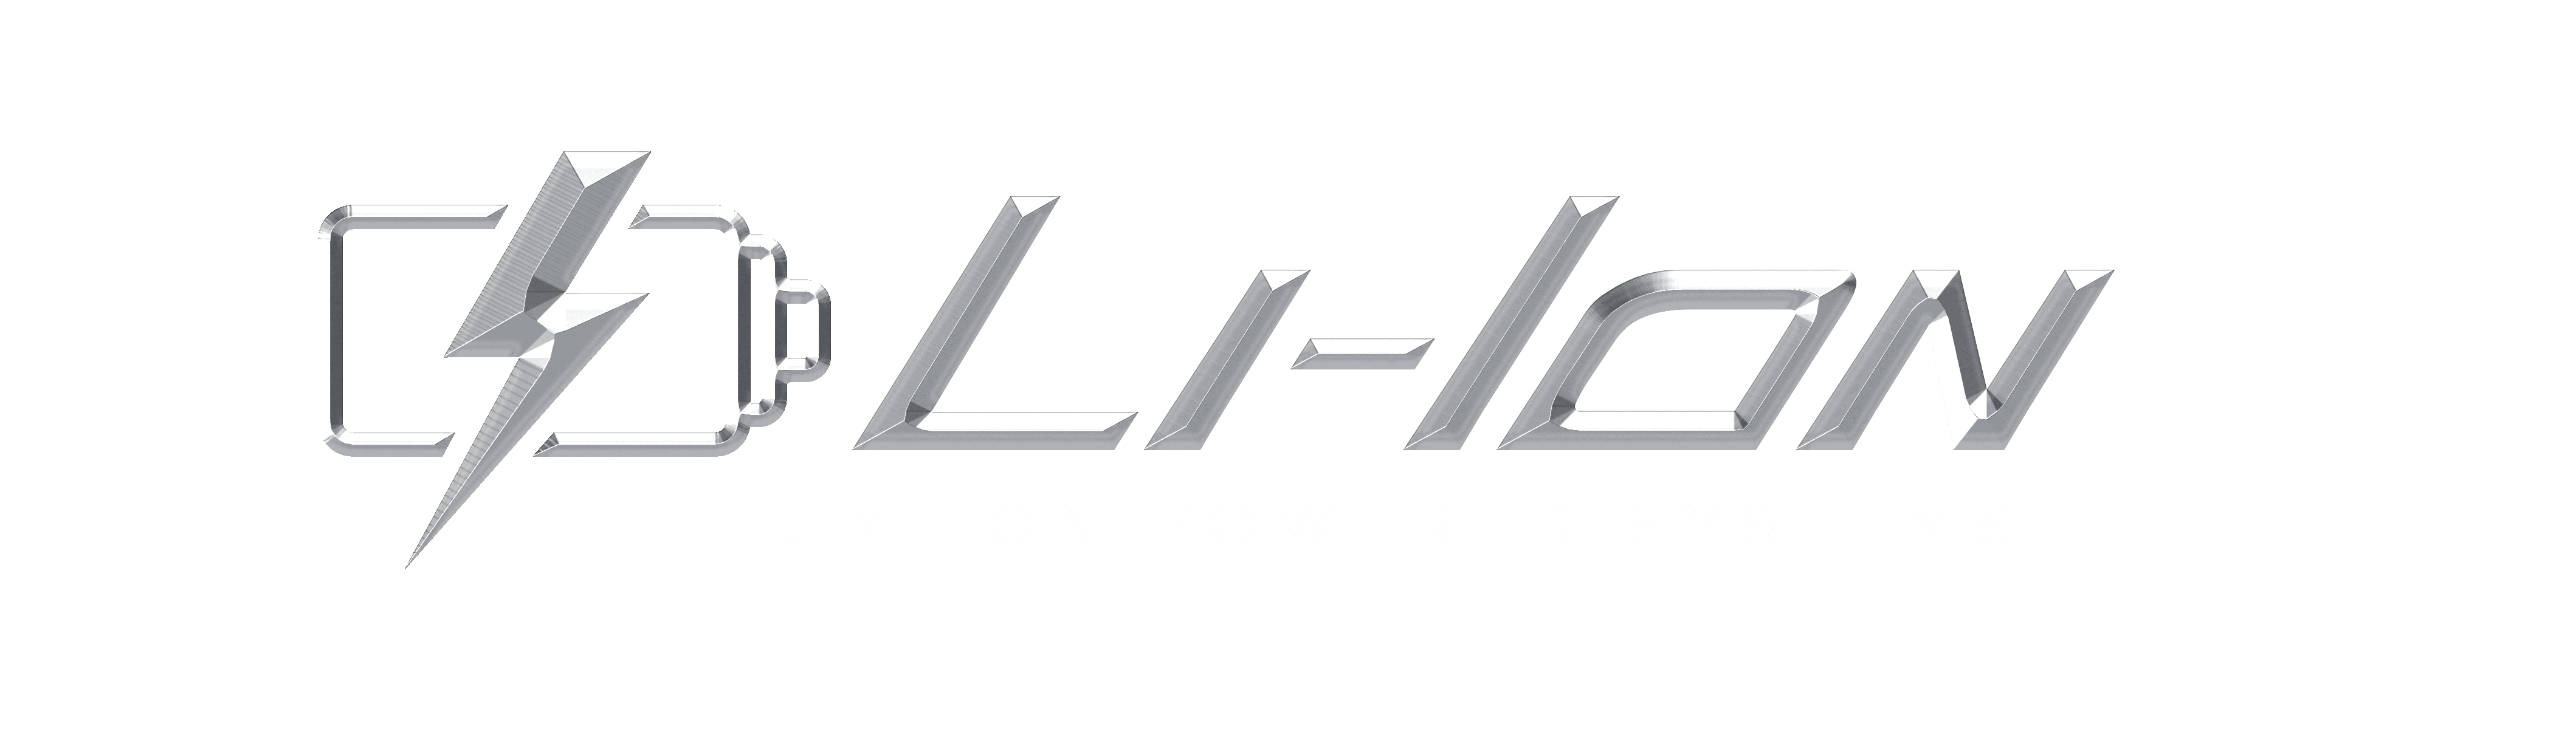 Li-Ion - Lithium-Ion Powered Systems